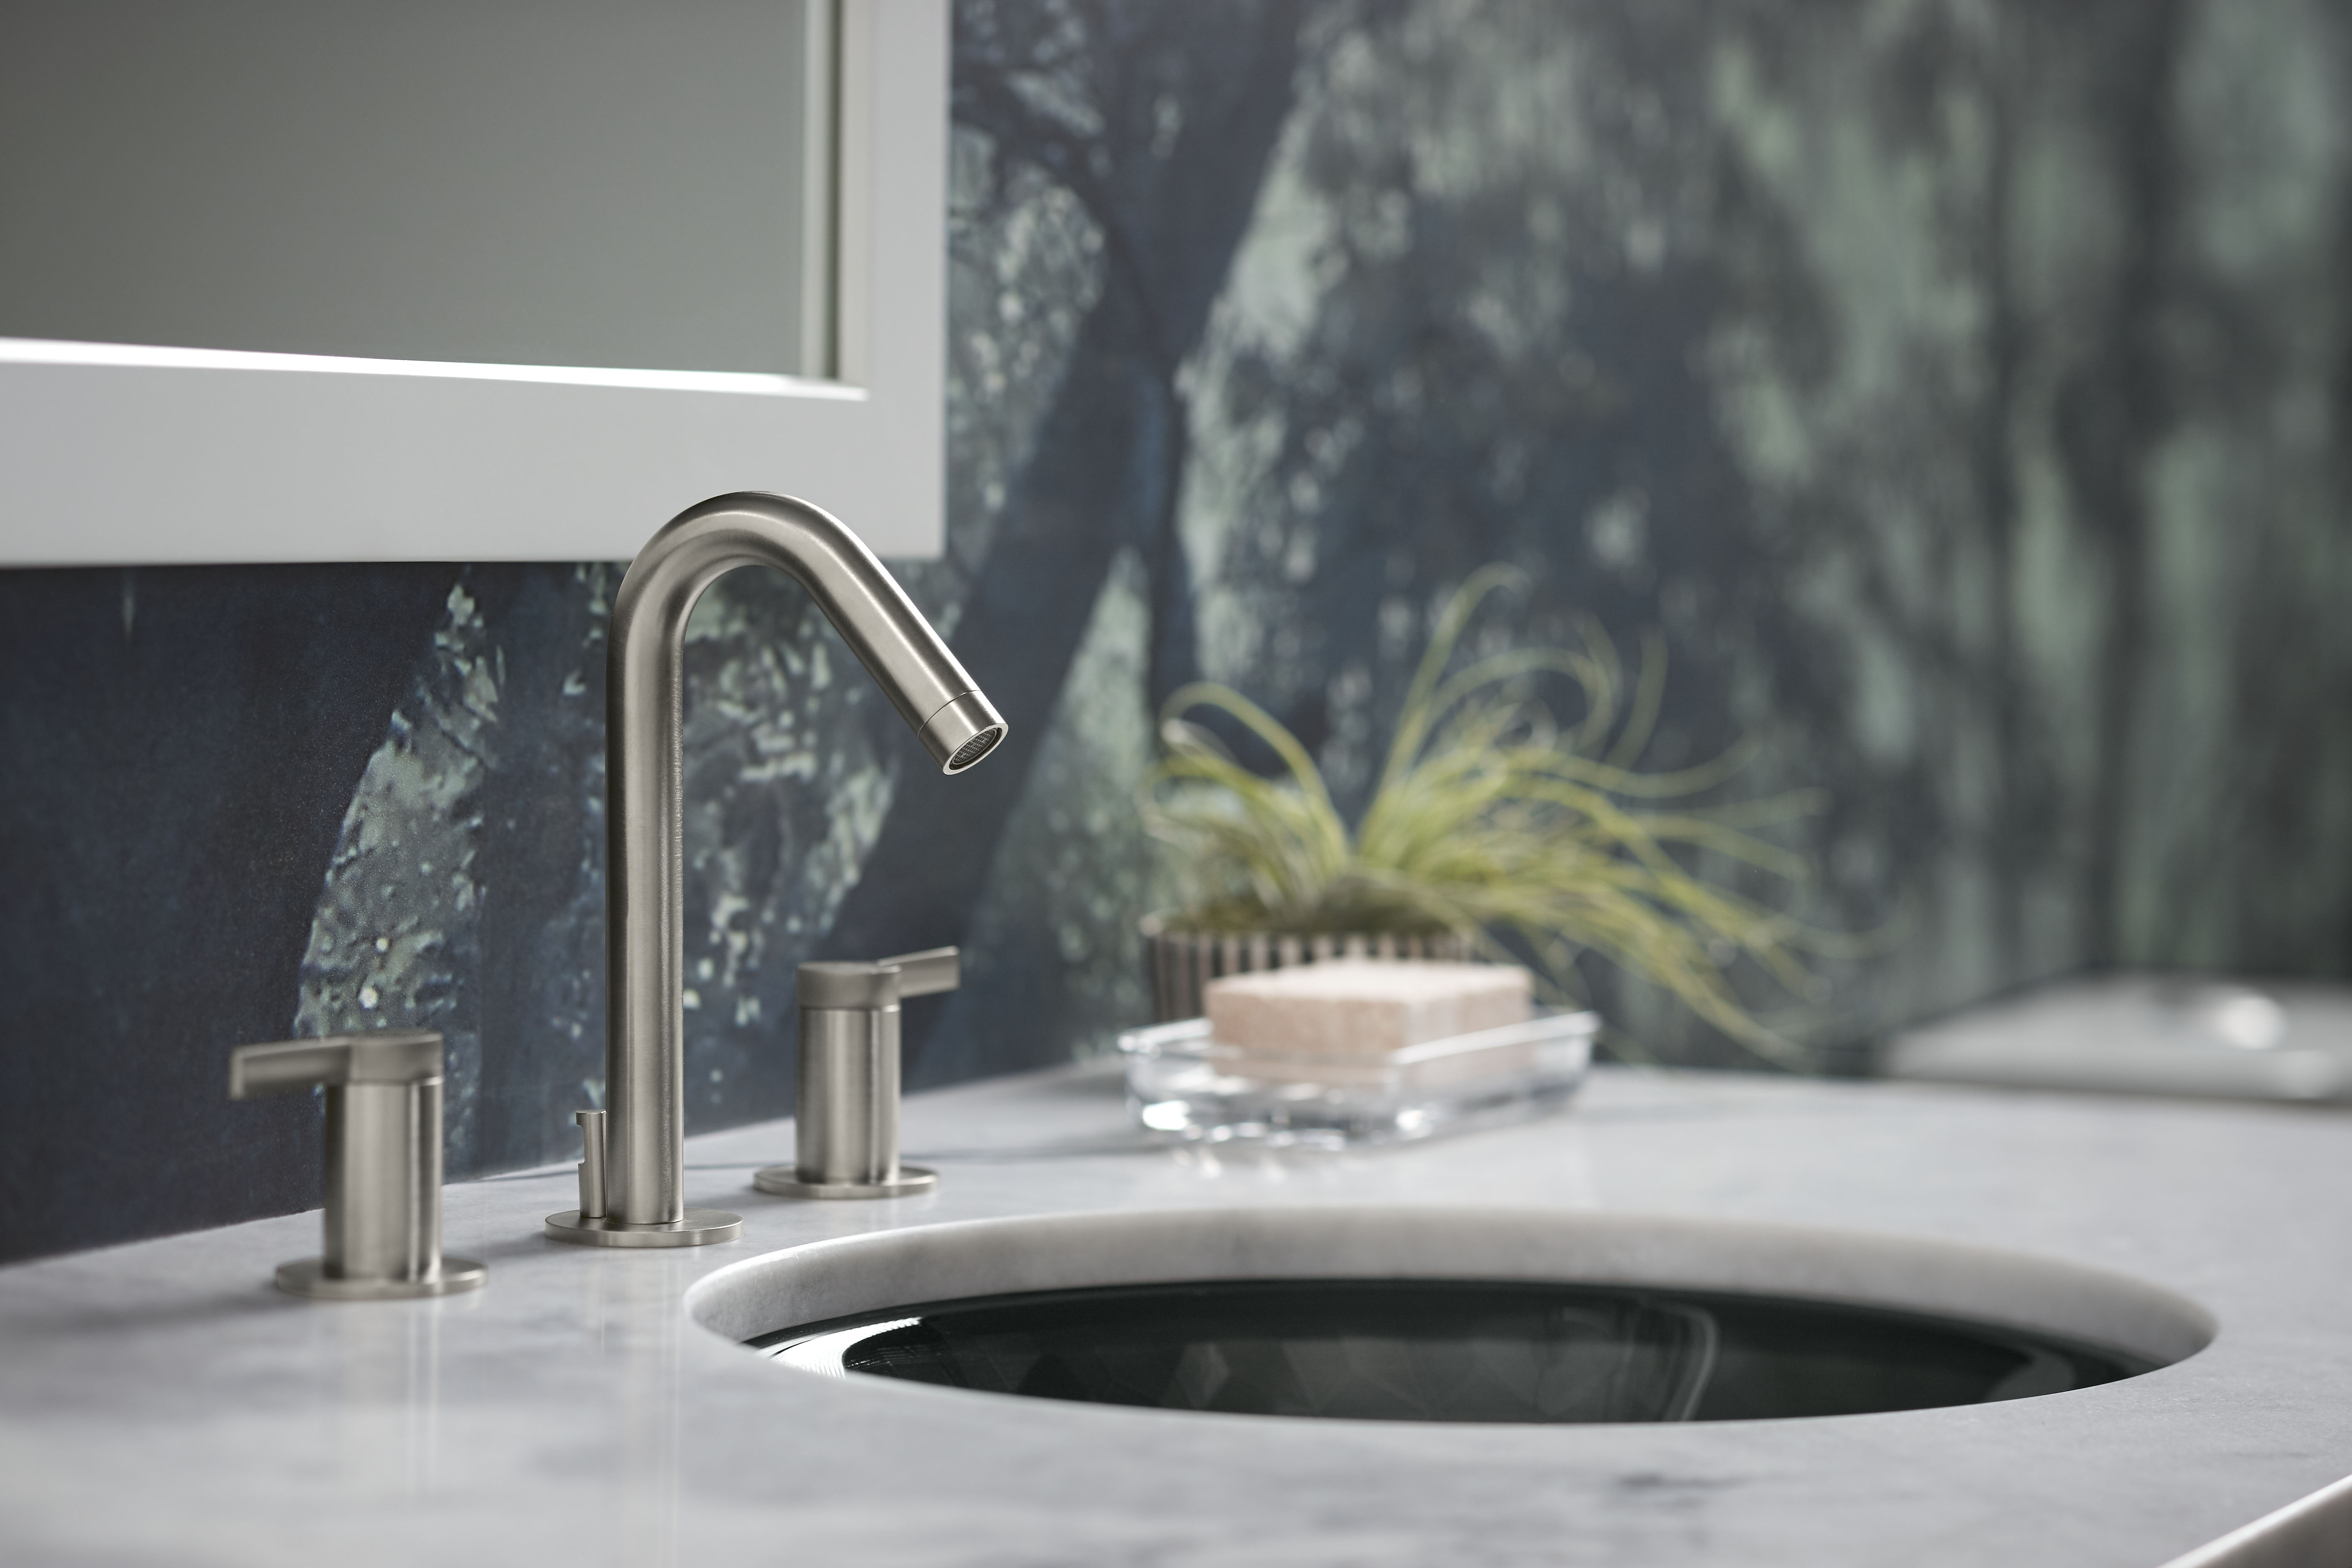 Stillness Faucet     Kallos Sink     The warm Vibrant Brushed Nickel finish on this minimal faucet enhances the space's simple, organic appearance.